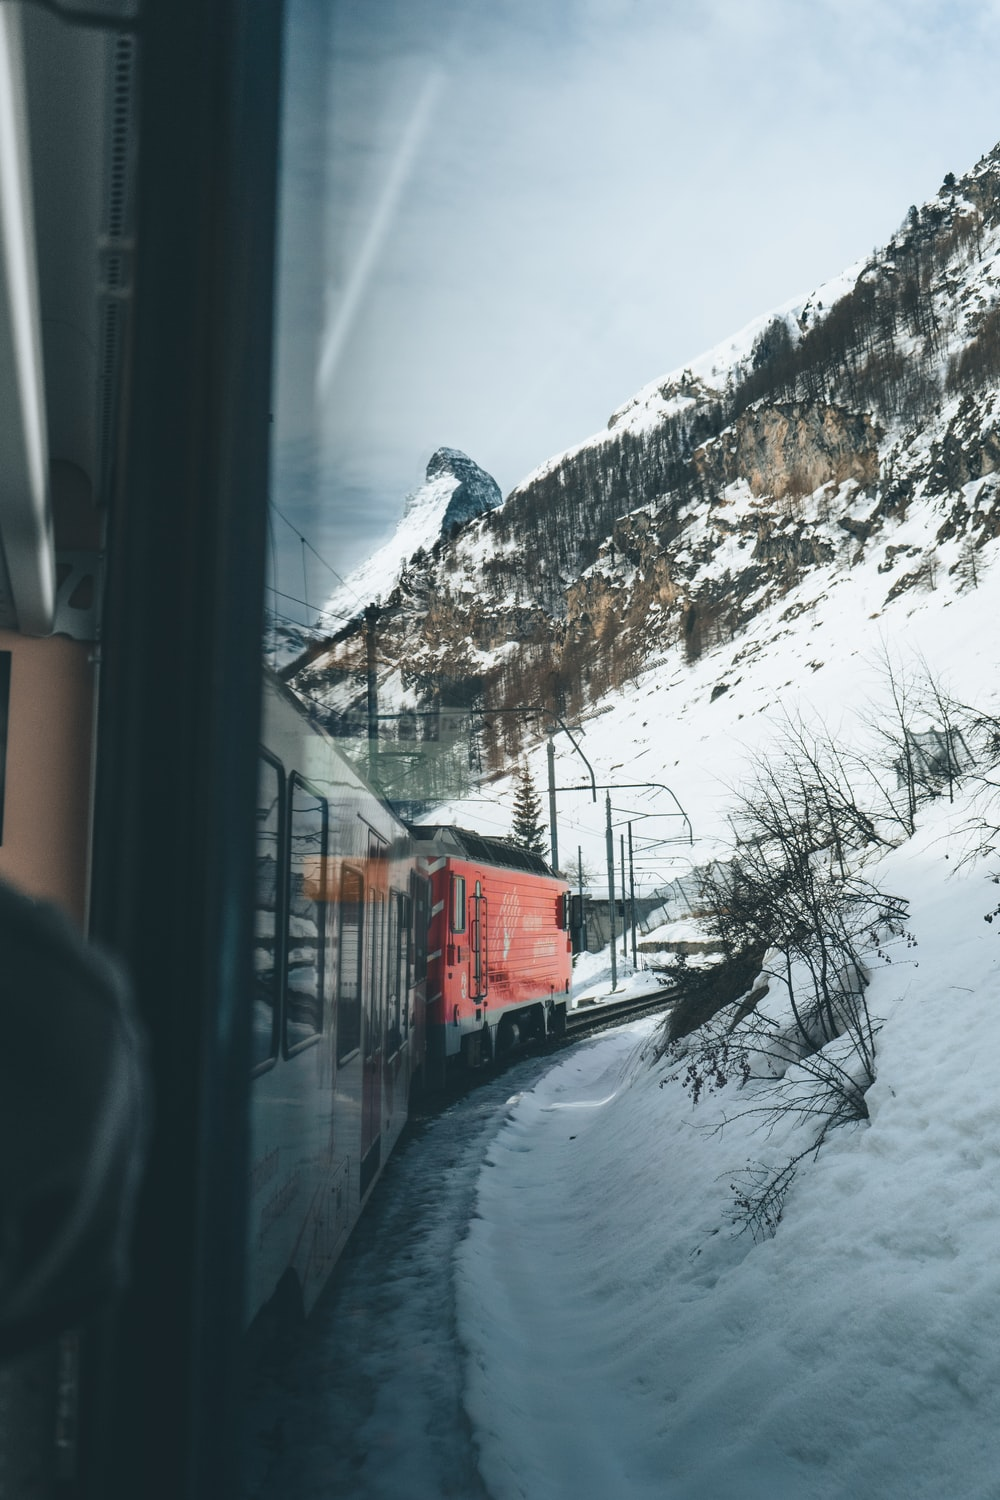 red train on rail tracks near snow covered mountain during daytime